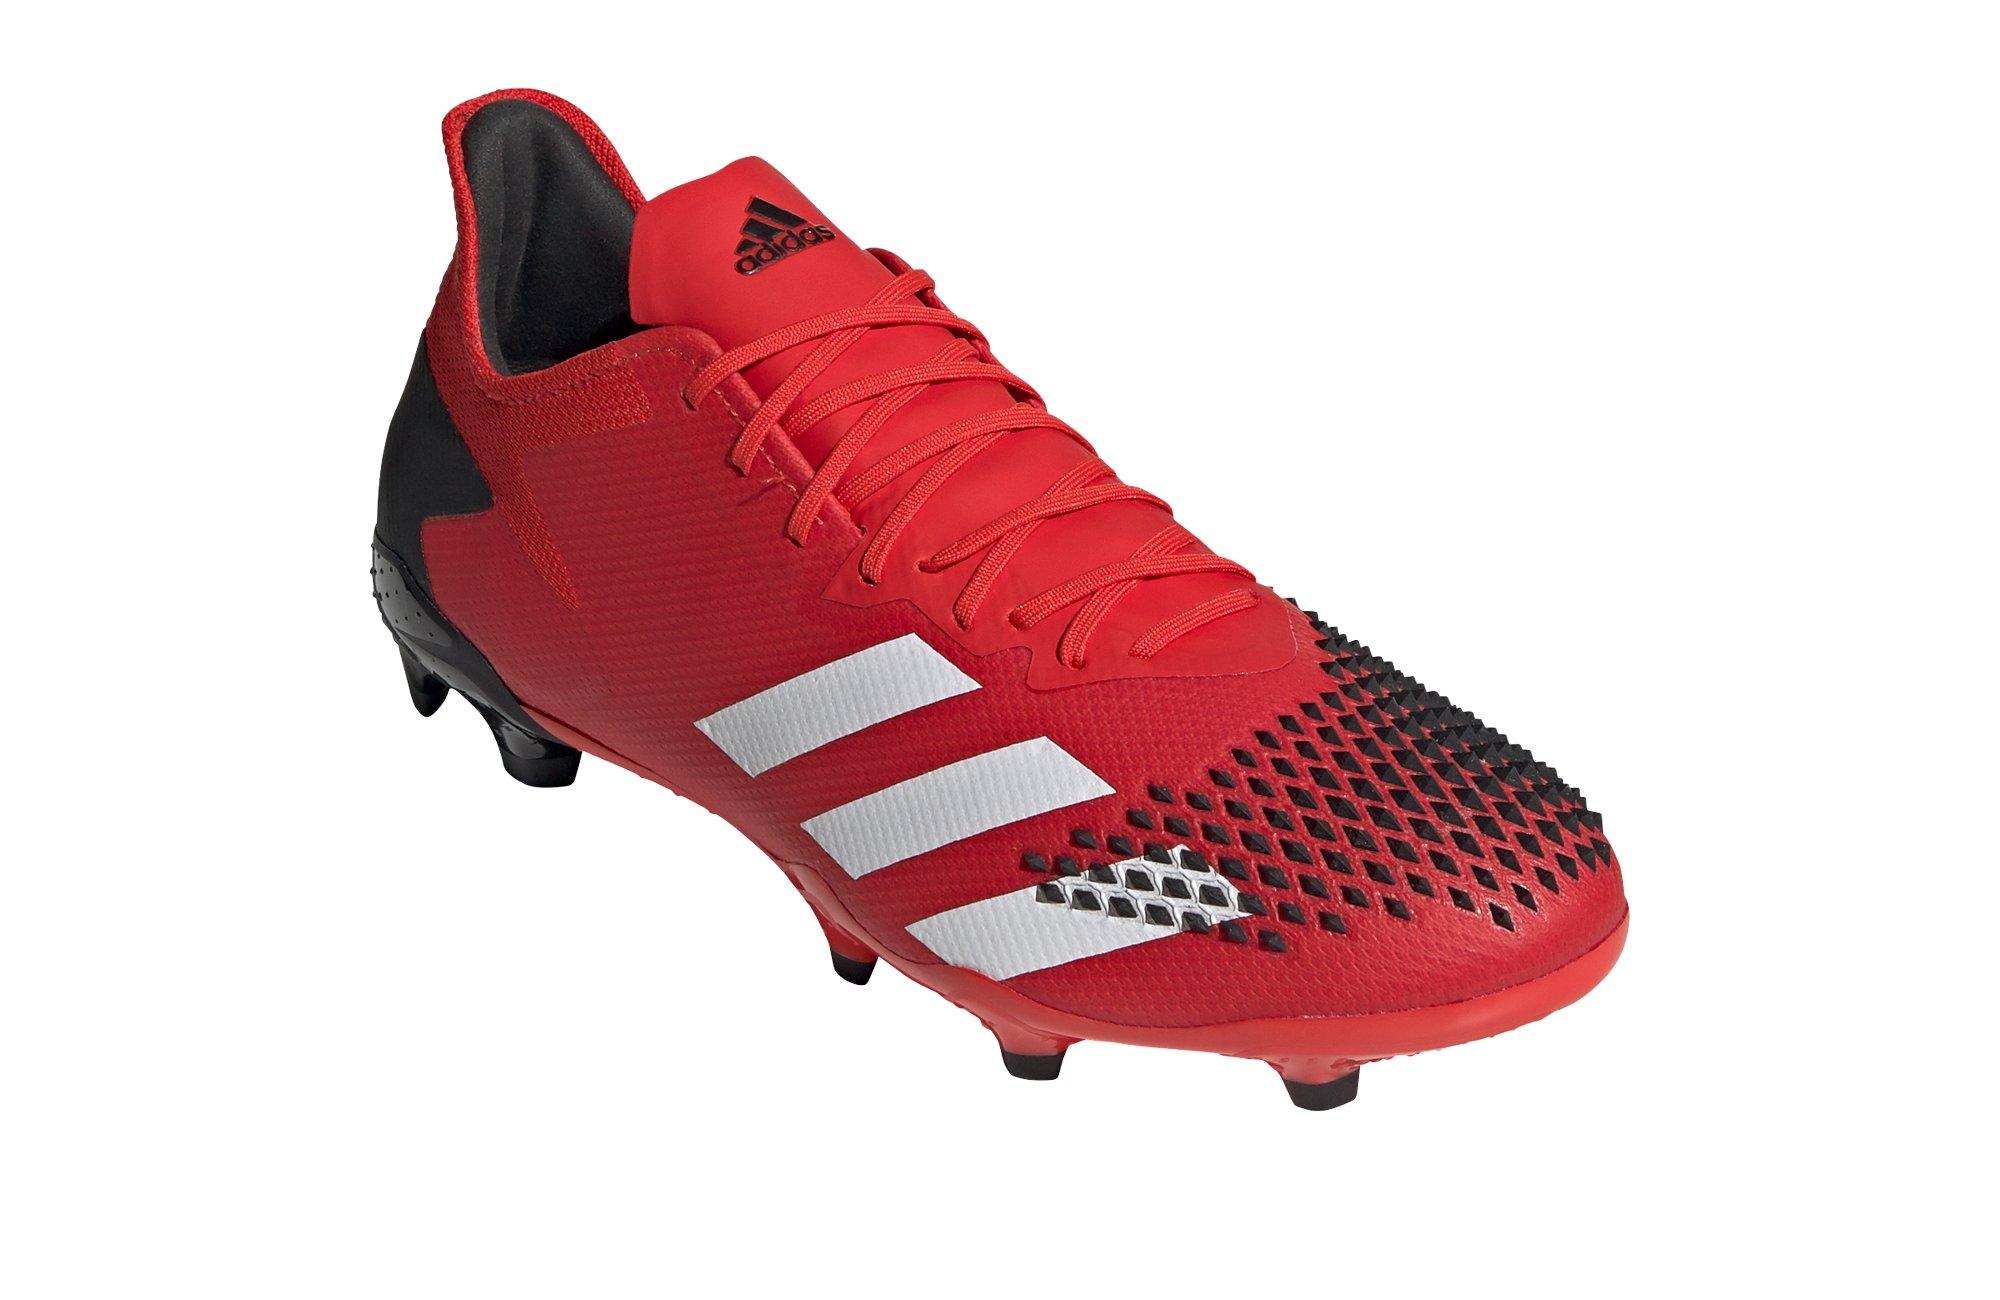 """adidas Predator 20.2 """"Active Red"""" Men's Soccer Cleat"""